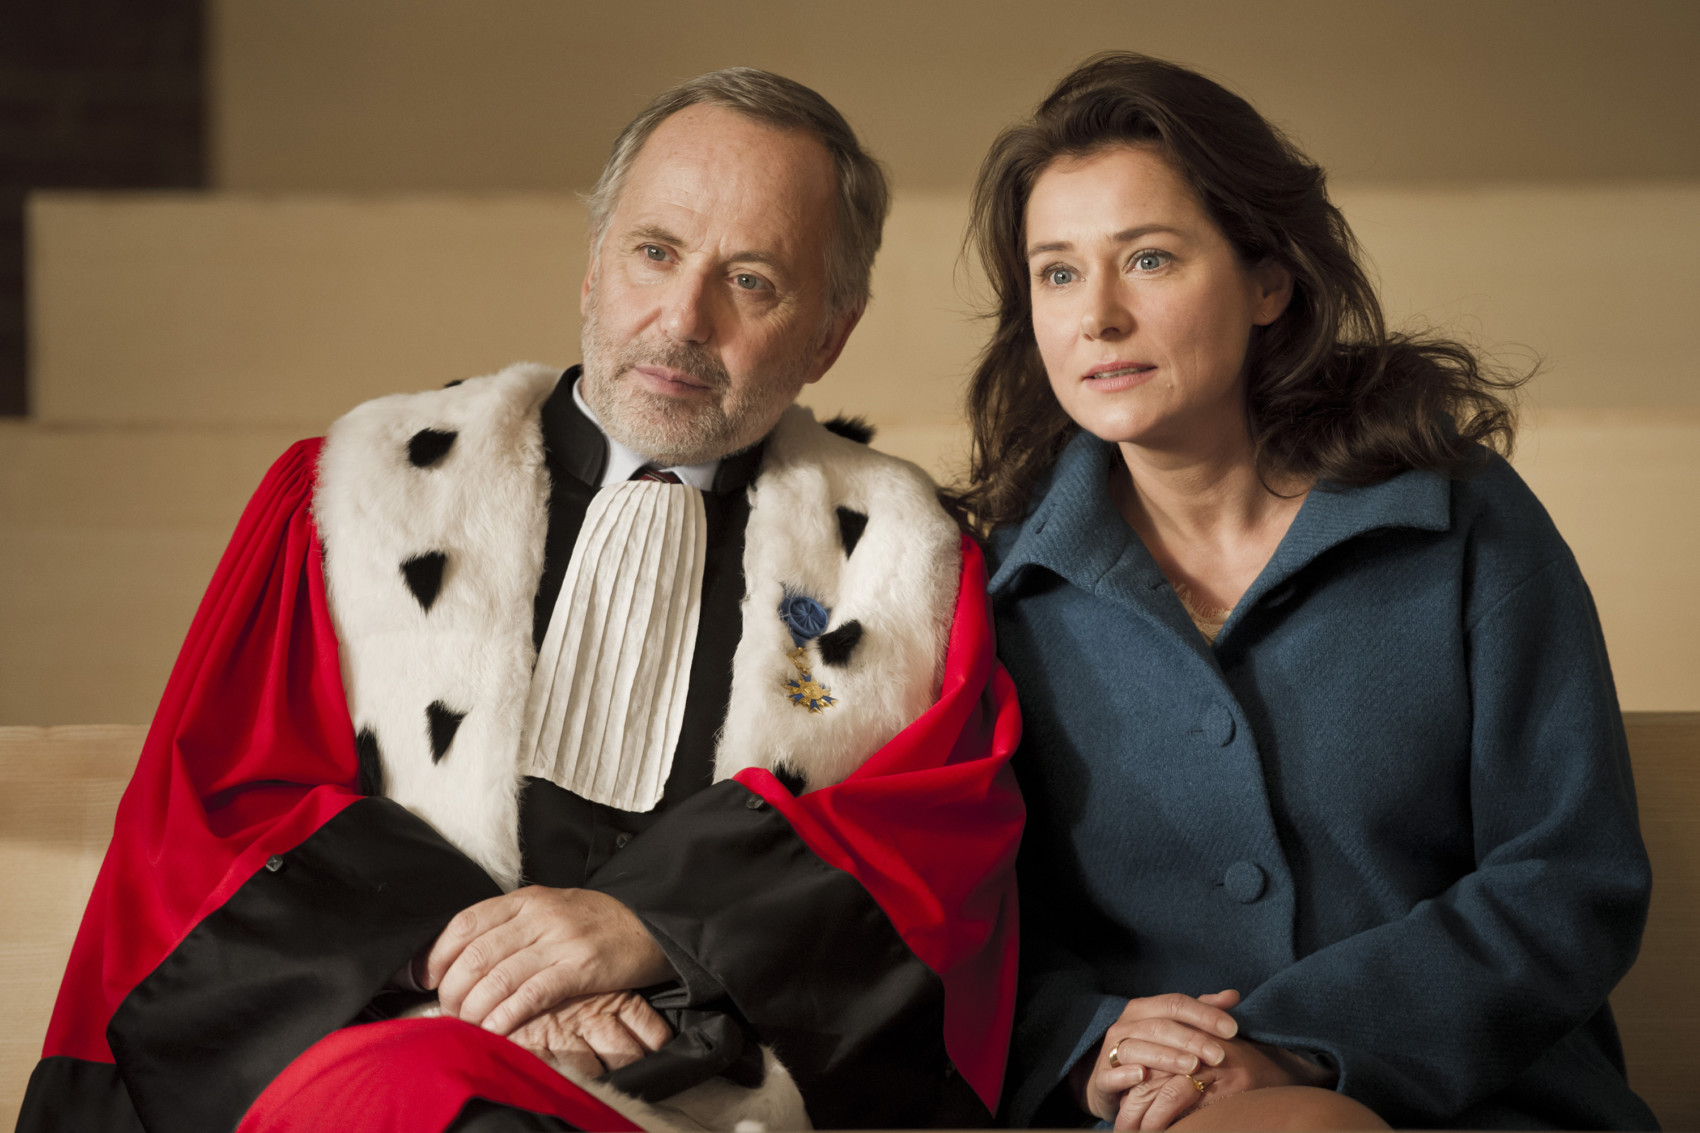 FABRICE LUCHINI and SIDSE BABETT KNUDSEN as RACINE and DITTE in the film COURTED. Photo Credit: JEROME PREBOIS